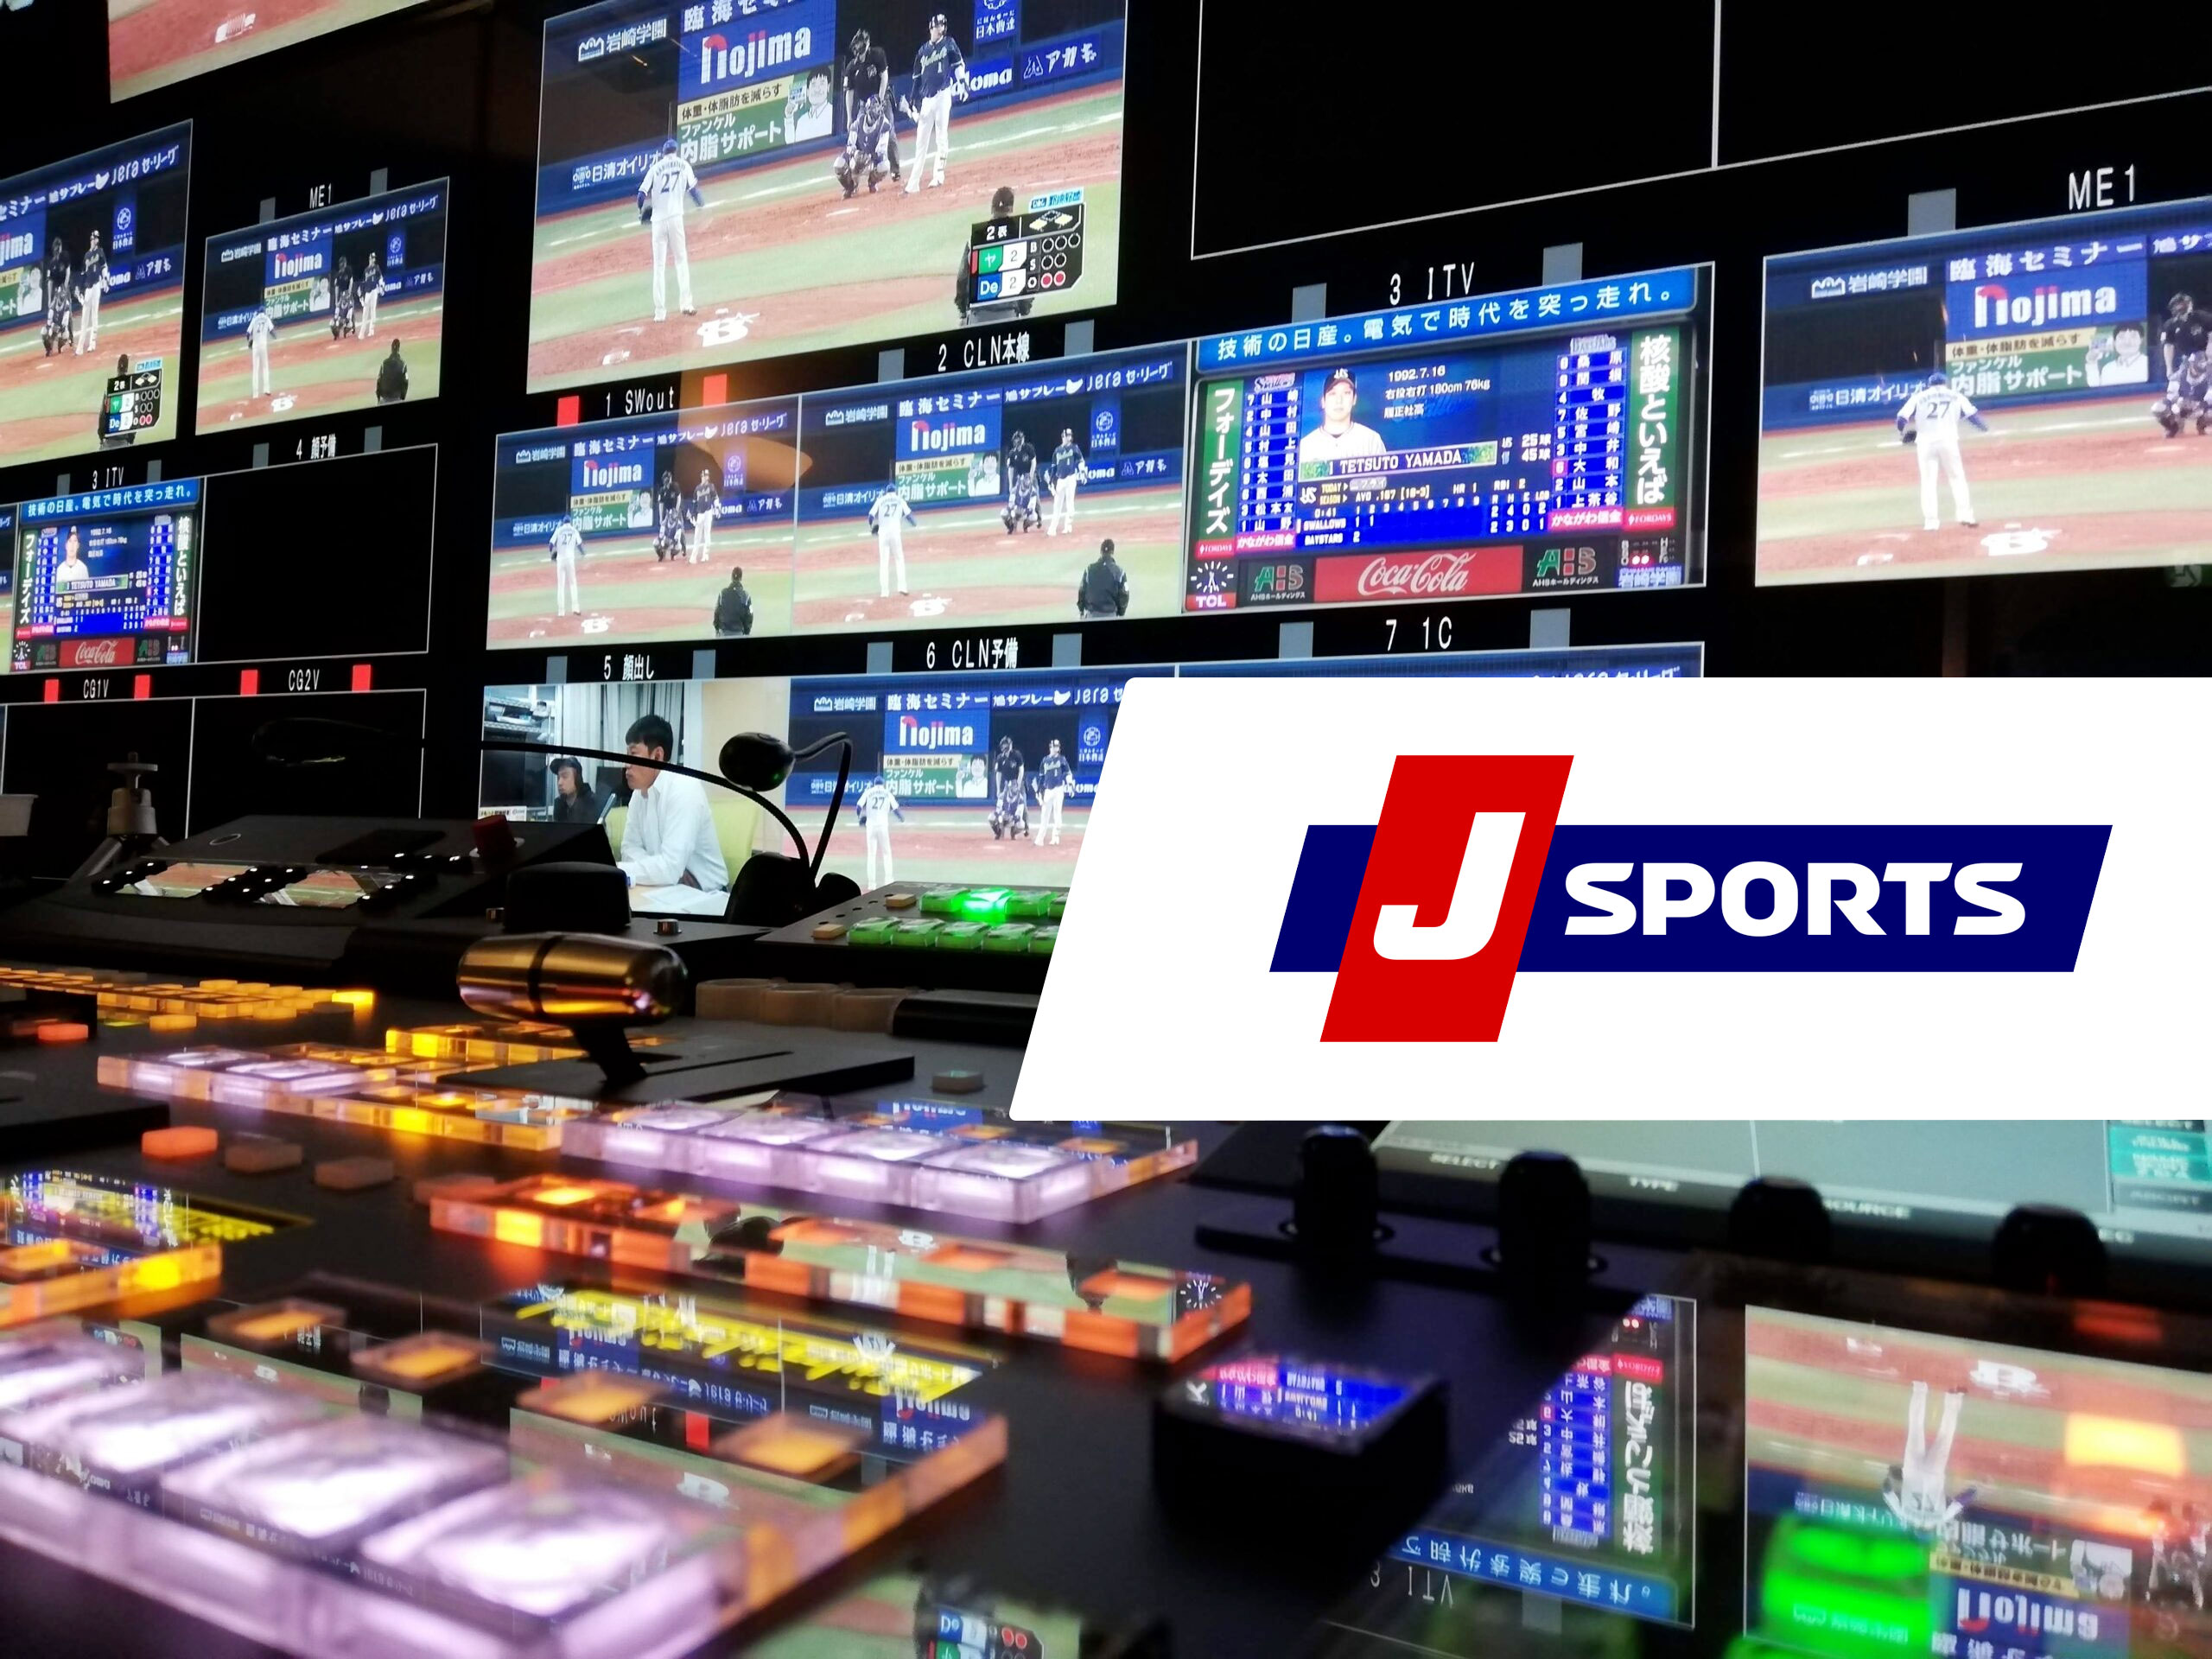 Japan's J SPORTS Selects LiveU's Multi-Camera Remote Production Solution for Baseball Game